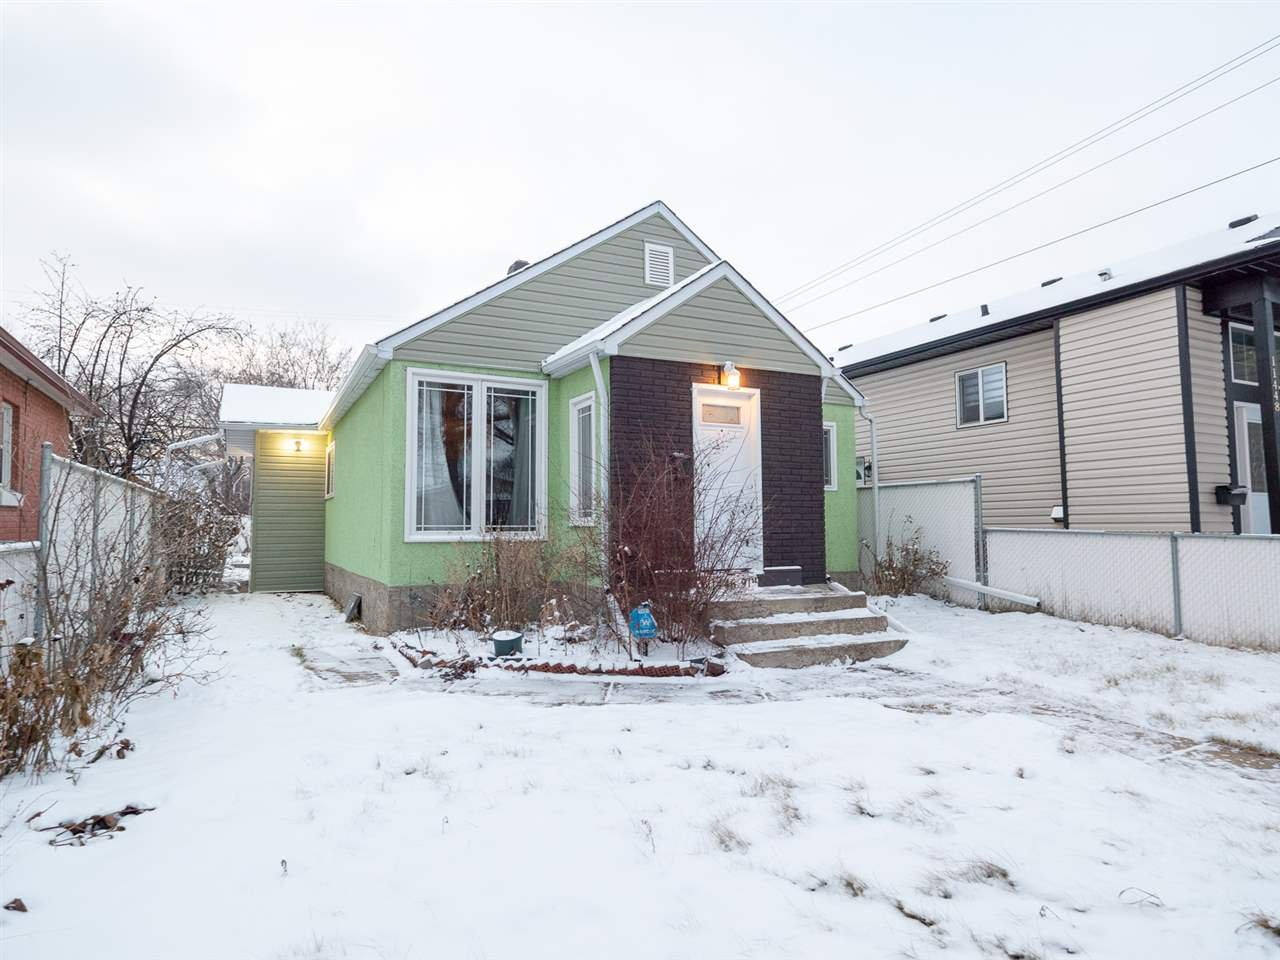 Main Photo: 11446 91 Street in Edmonton: Zone 05 House for sale : MLS®# E4181327